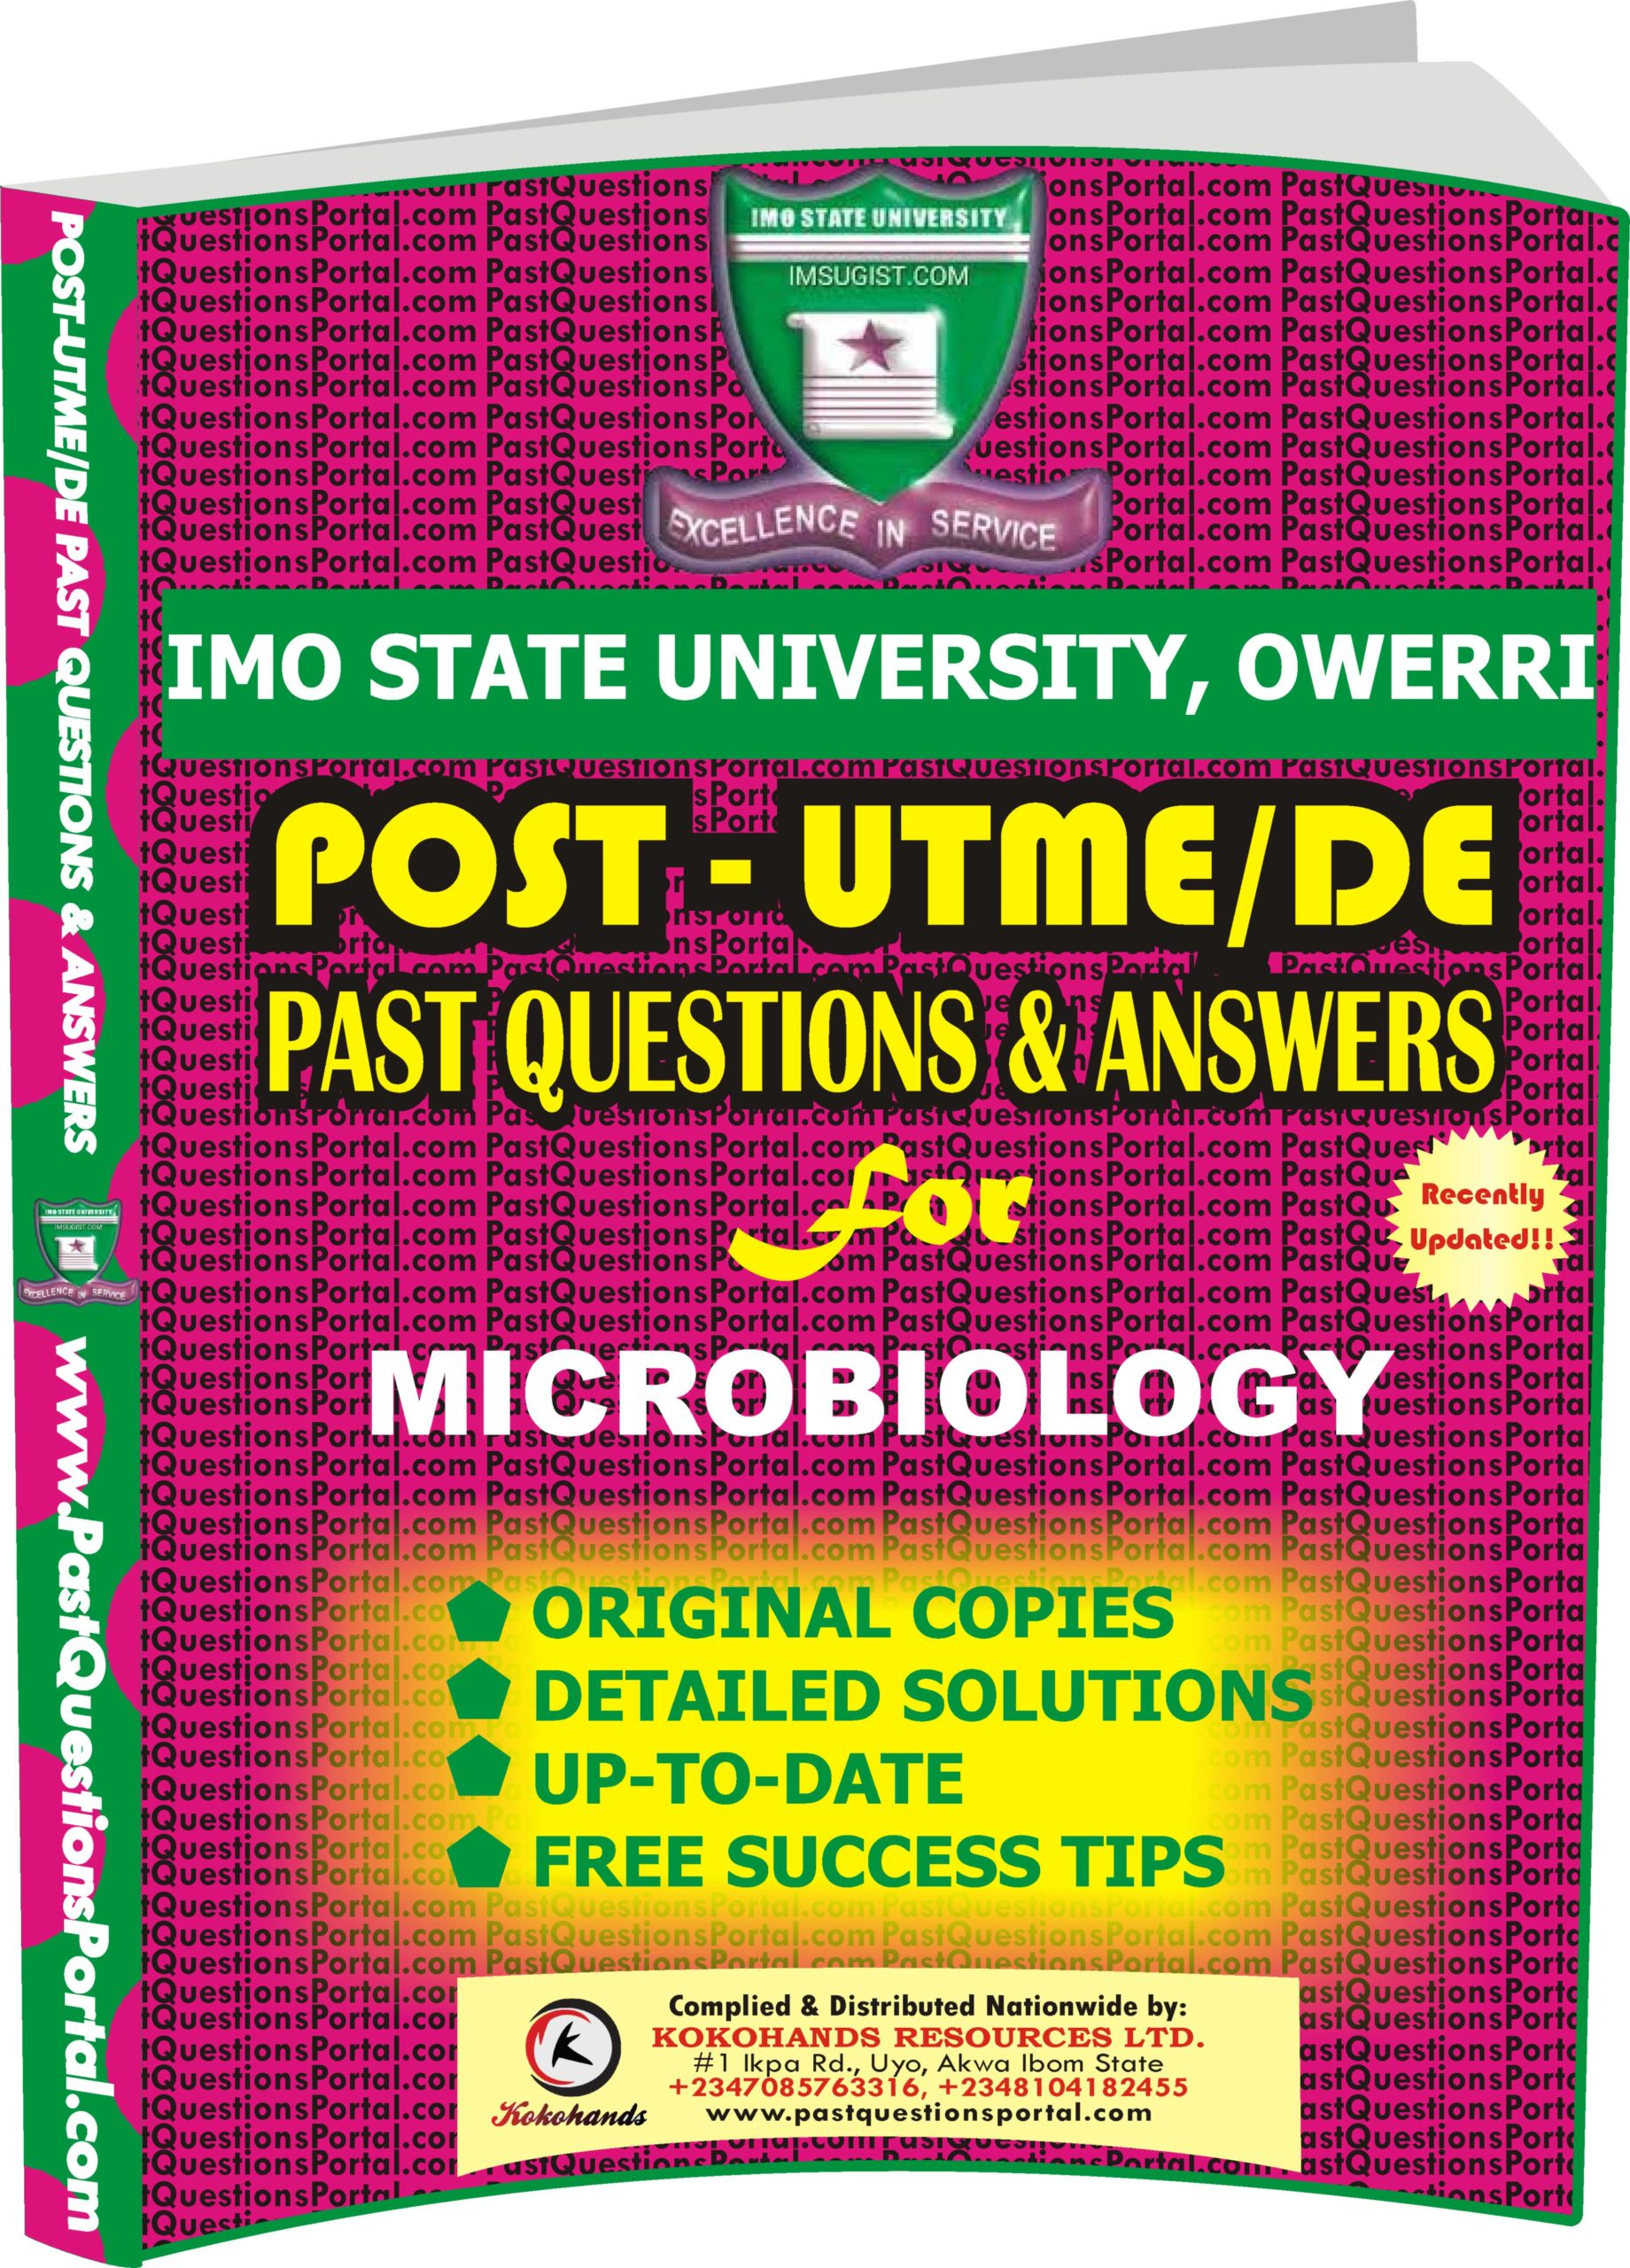 IMSU Post UTME Past Questions for MICROBIOLOGY